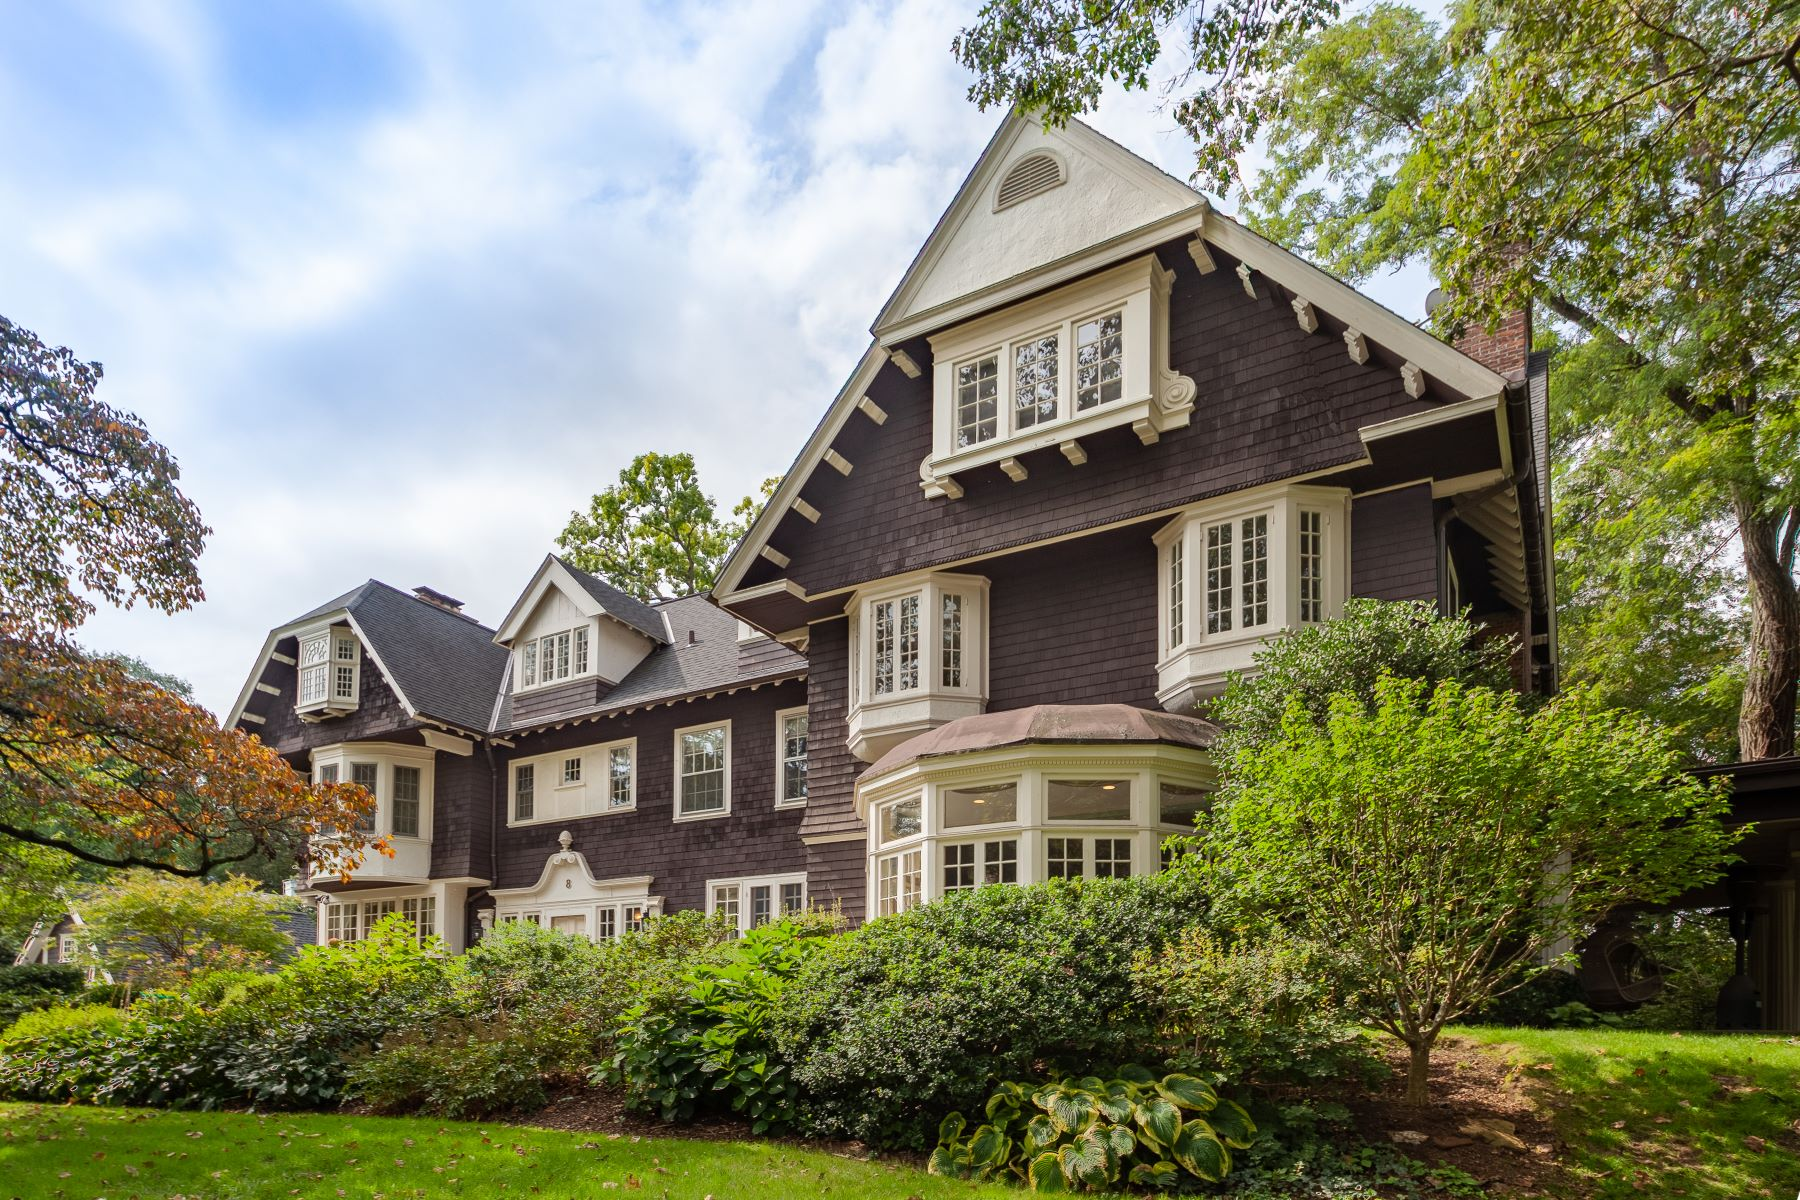 Single Family Homes for Active at Welcome To 8 Woodland Avenue 8 Woodland Avenue Bronxville, New York 10708 United States